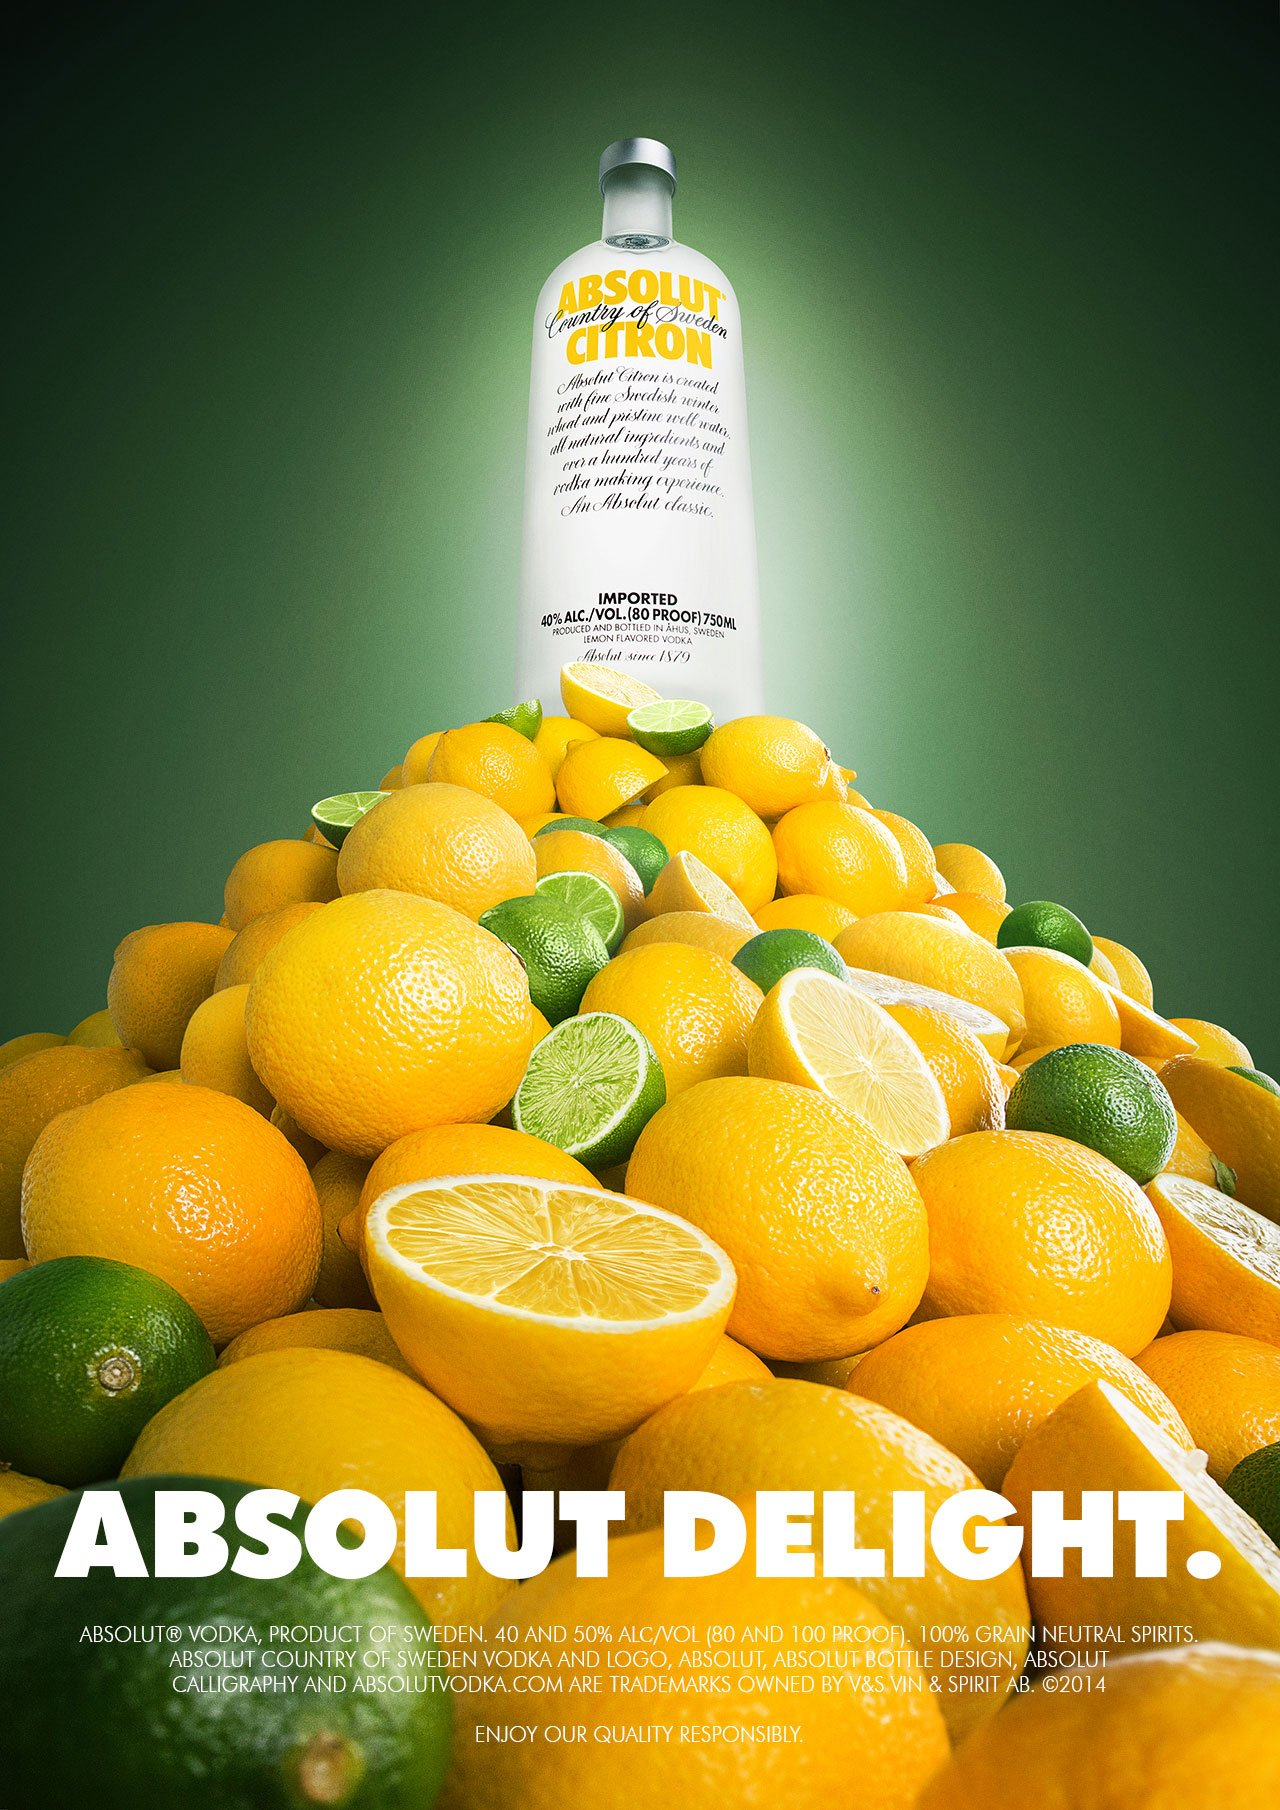 absolut vodka bottle on top of lemon mountain